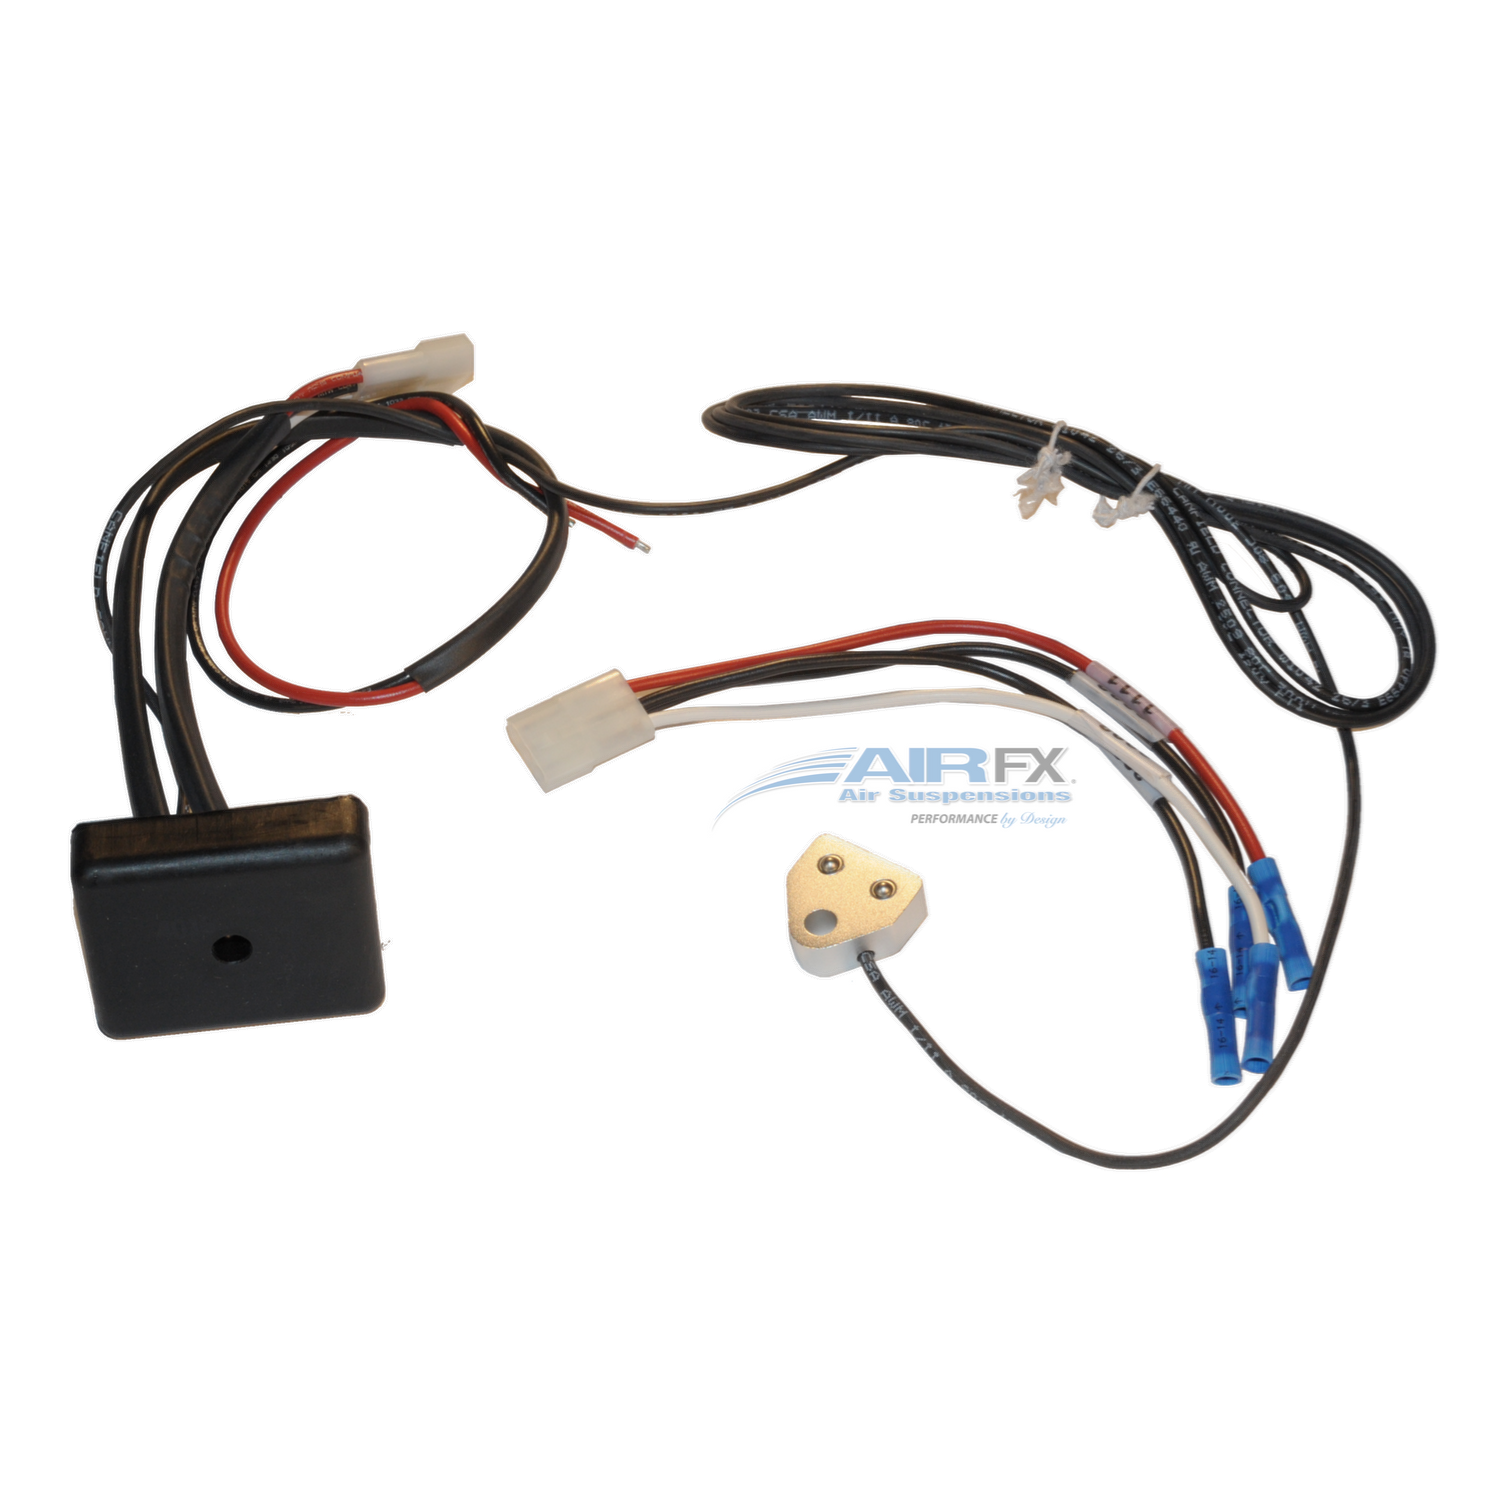 FXA-1010-MB-1  Micro Button Harness, nickel platted [+$400.00]